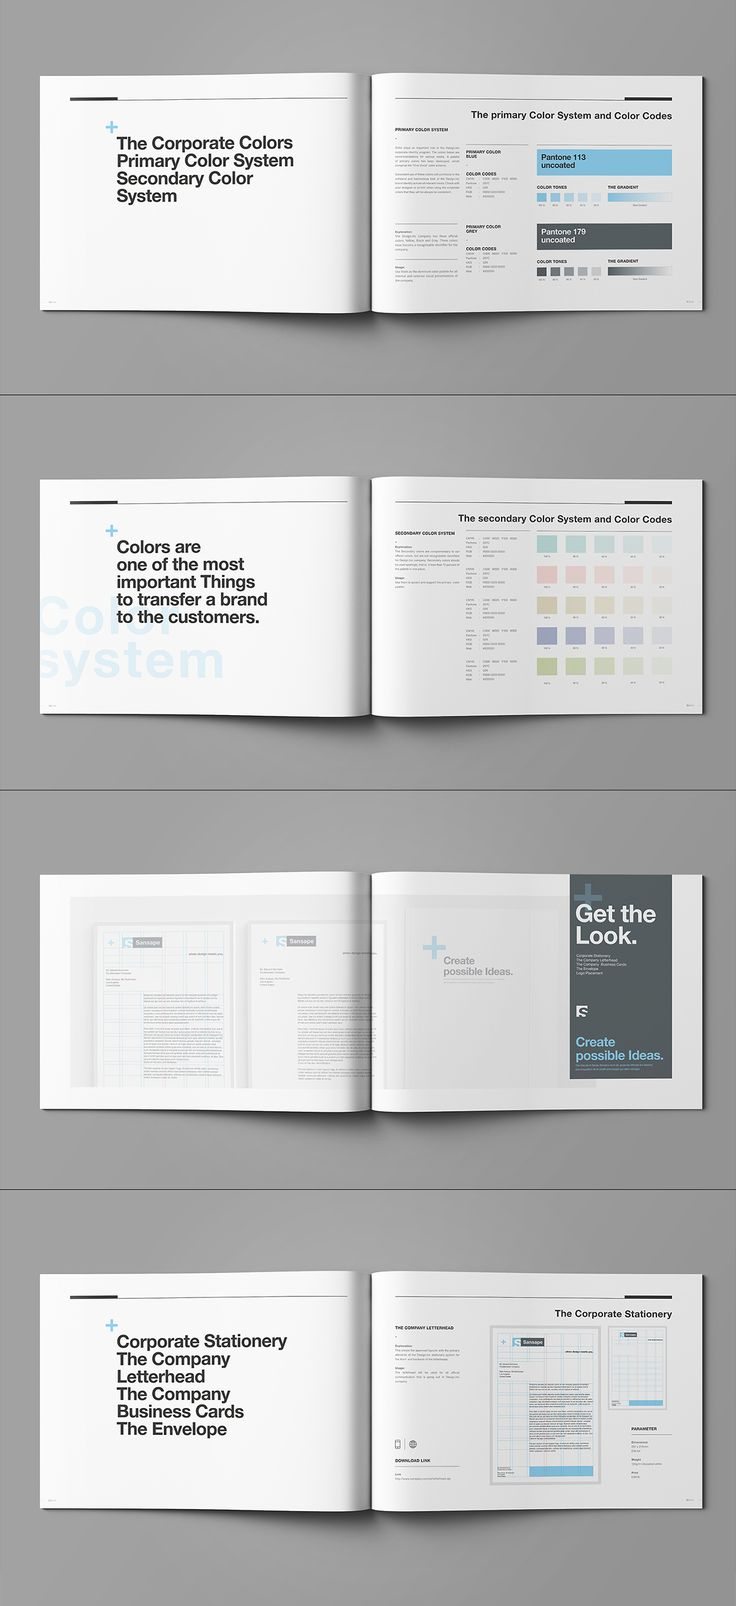 53 best Freelance images on Pinterest | Corporate identity, Charts ...